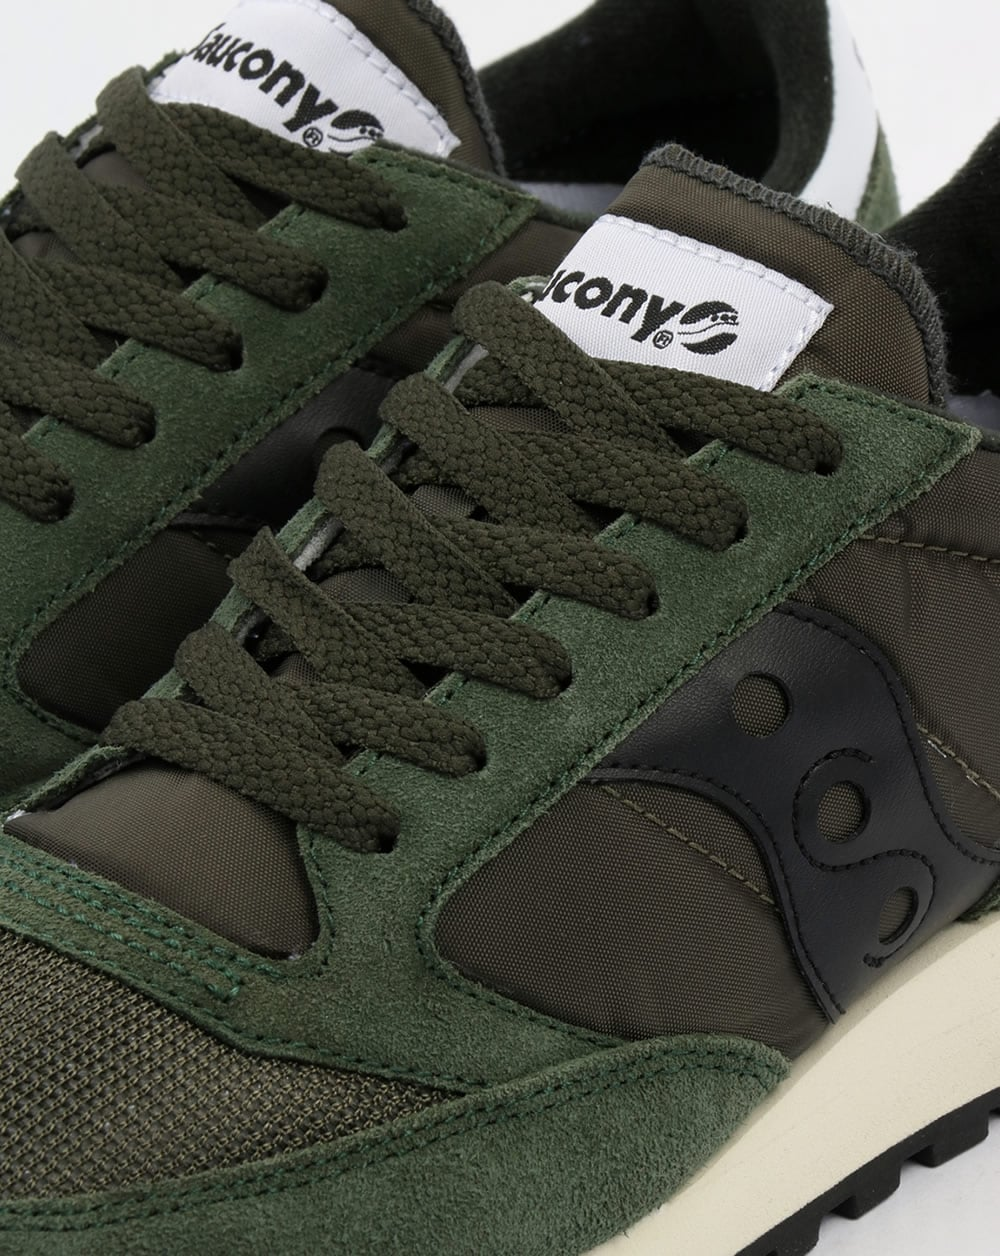 9308c88f42 Saucony Jazz Original Vintage Trainers Dark Green/Black